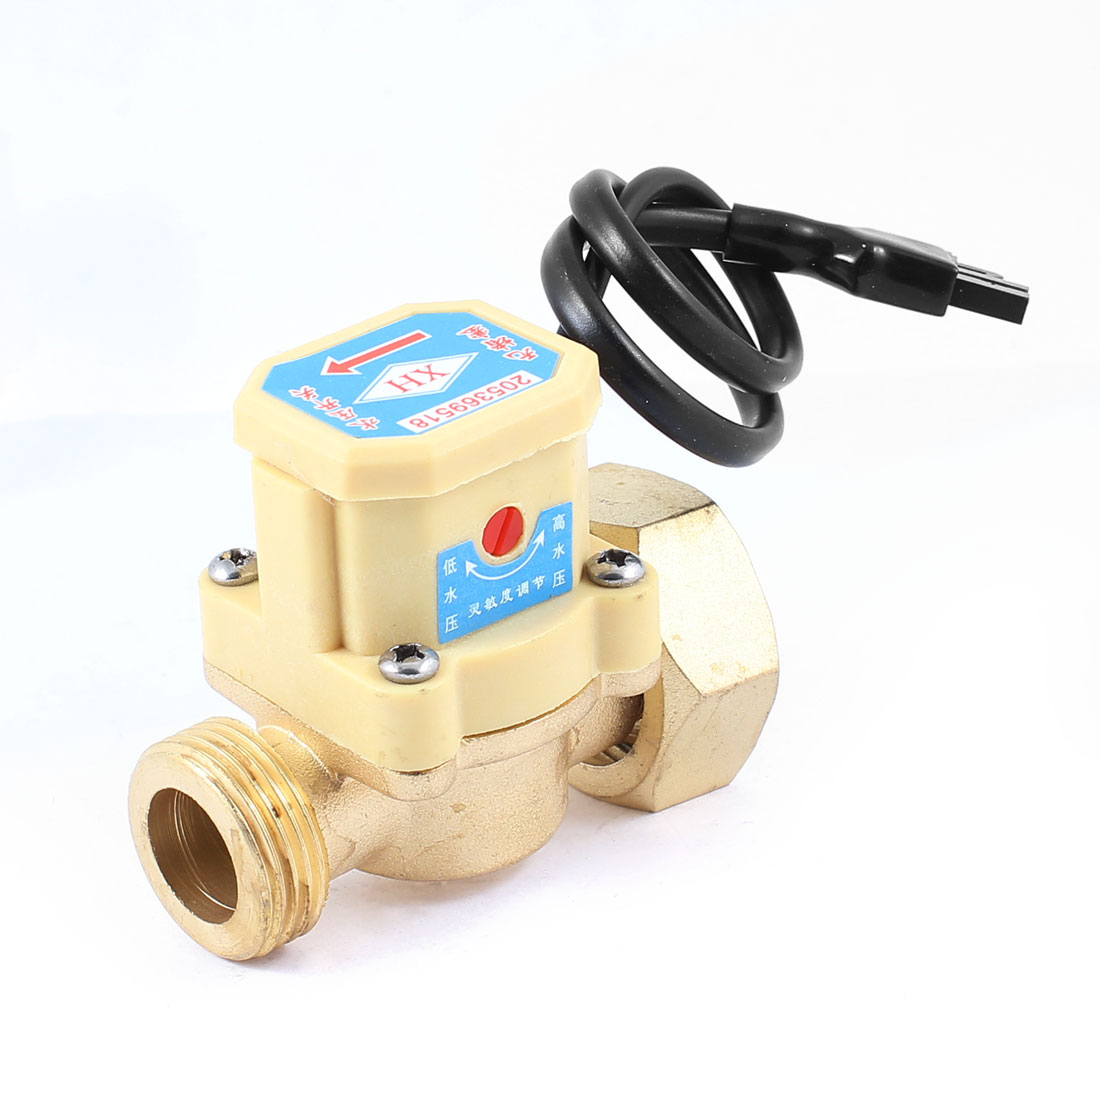 26mm Male Thread 90W Power Circulation Pump Water Heater Flow Sensor Switch